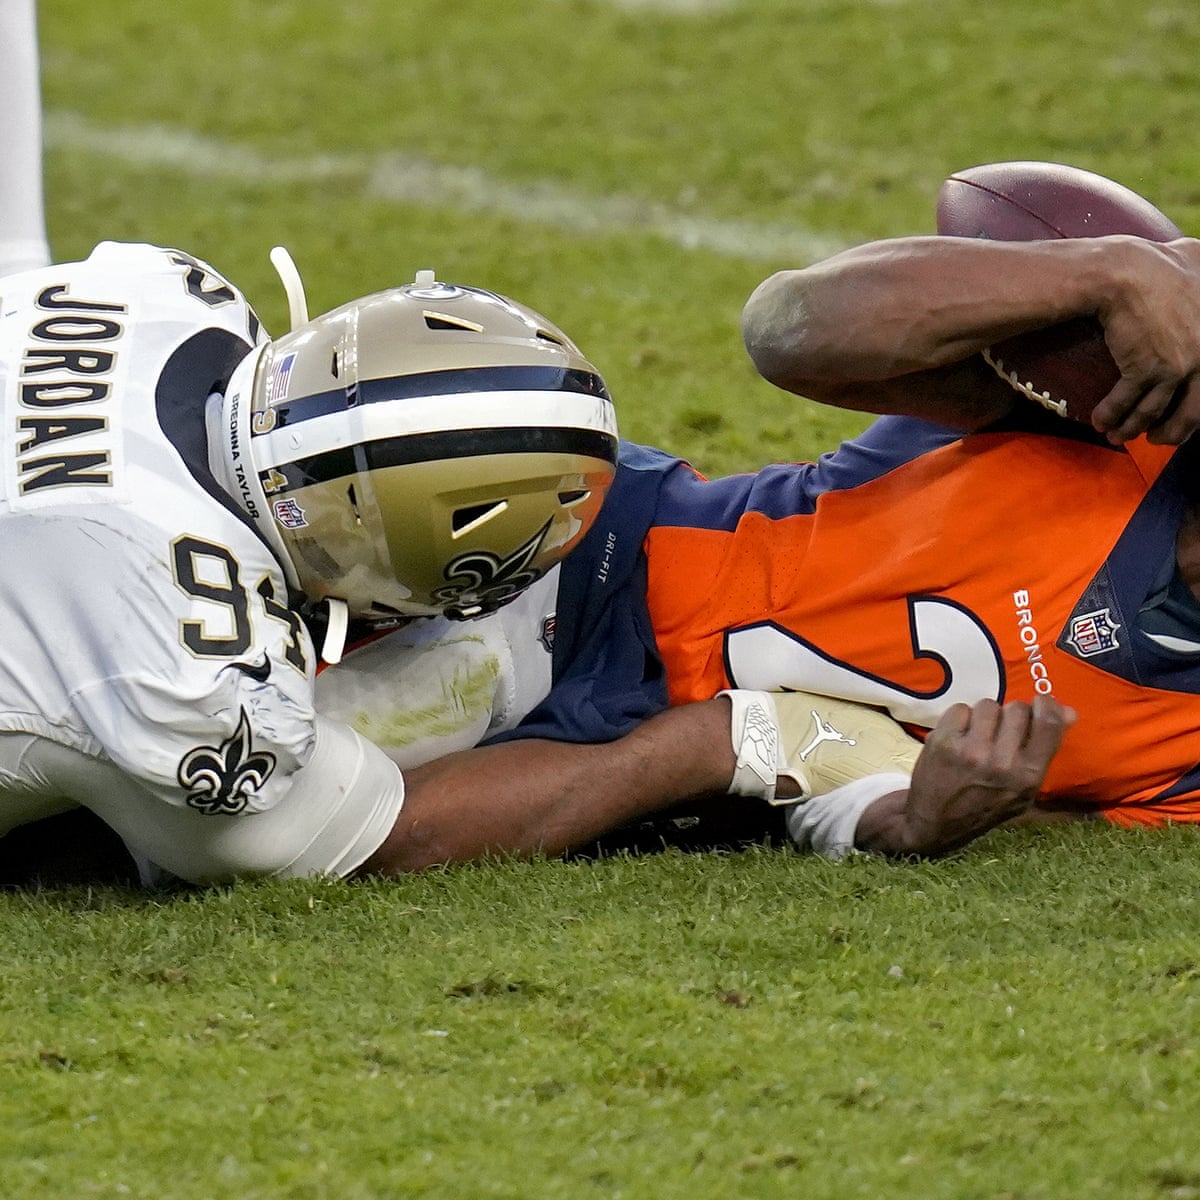 Covid Chaos In Nfl As Business As Usual Approach Flounders Coronavirus The Guardian